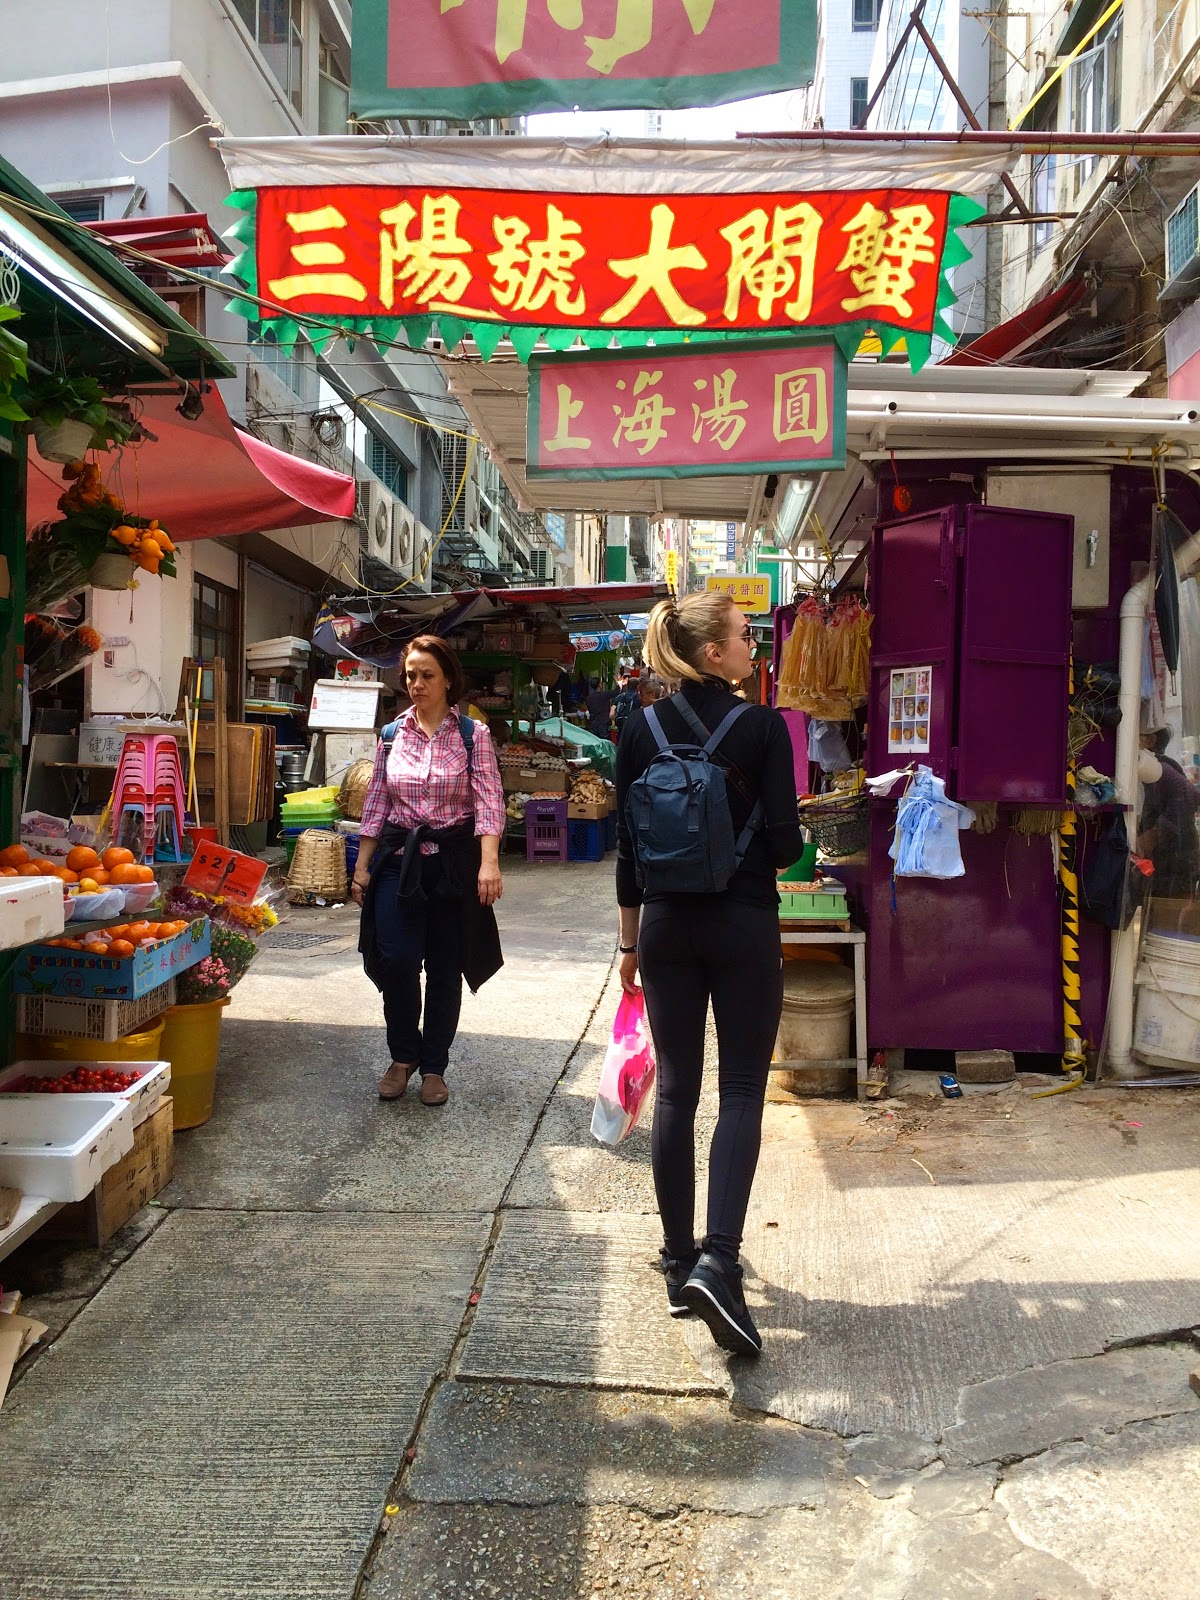 Hollywood Road Market Hong Kong hotspot